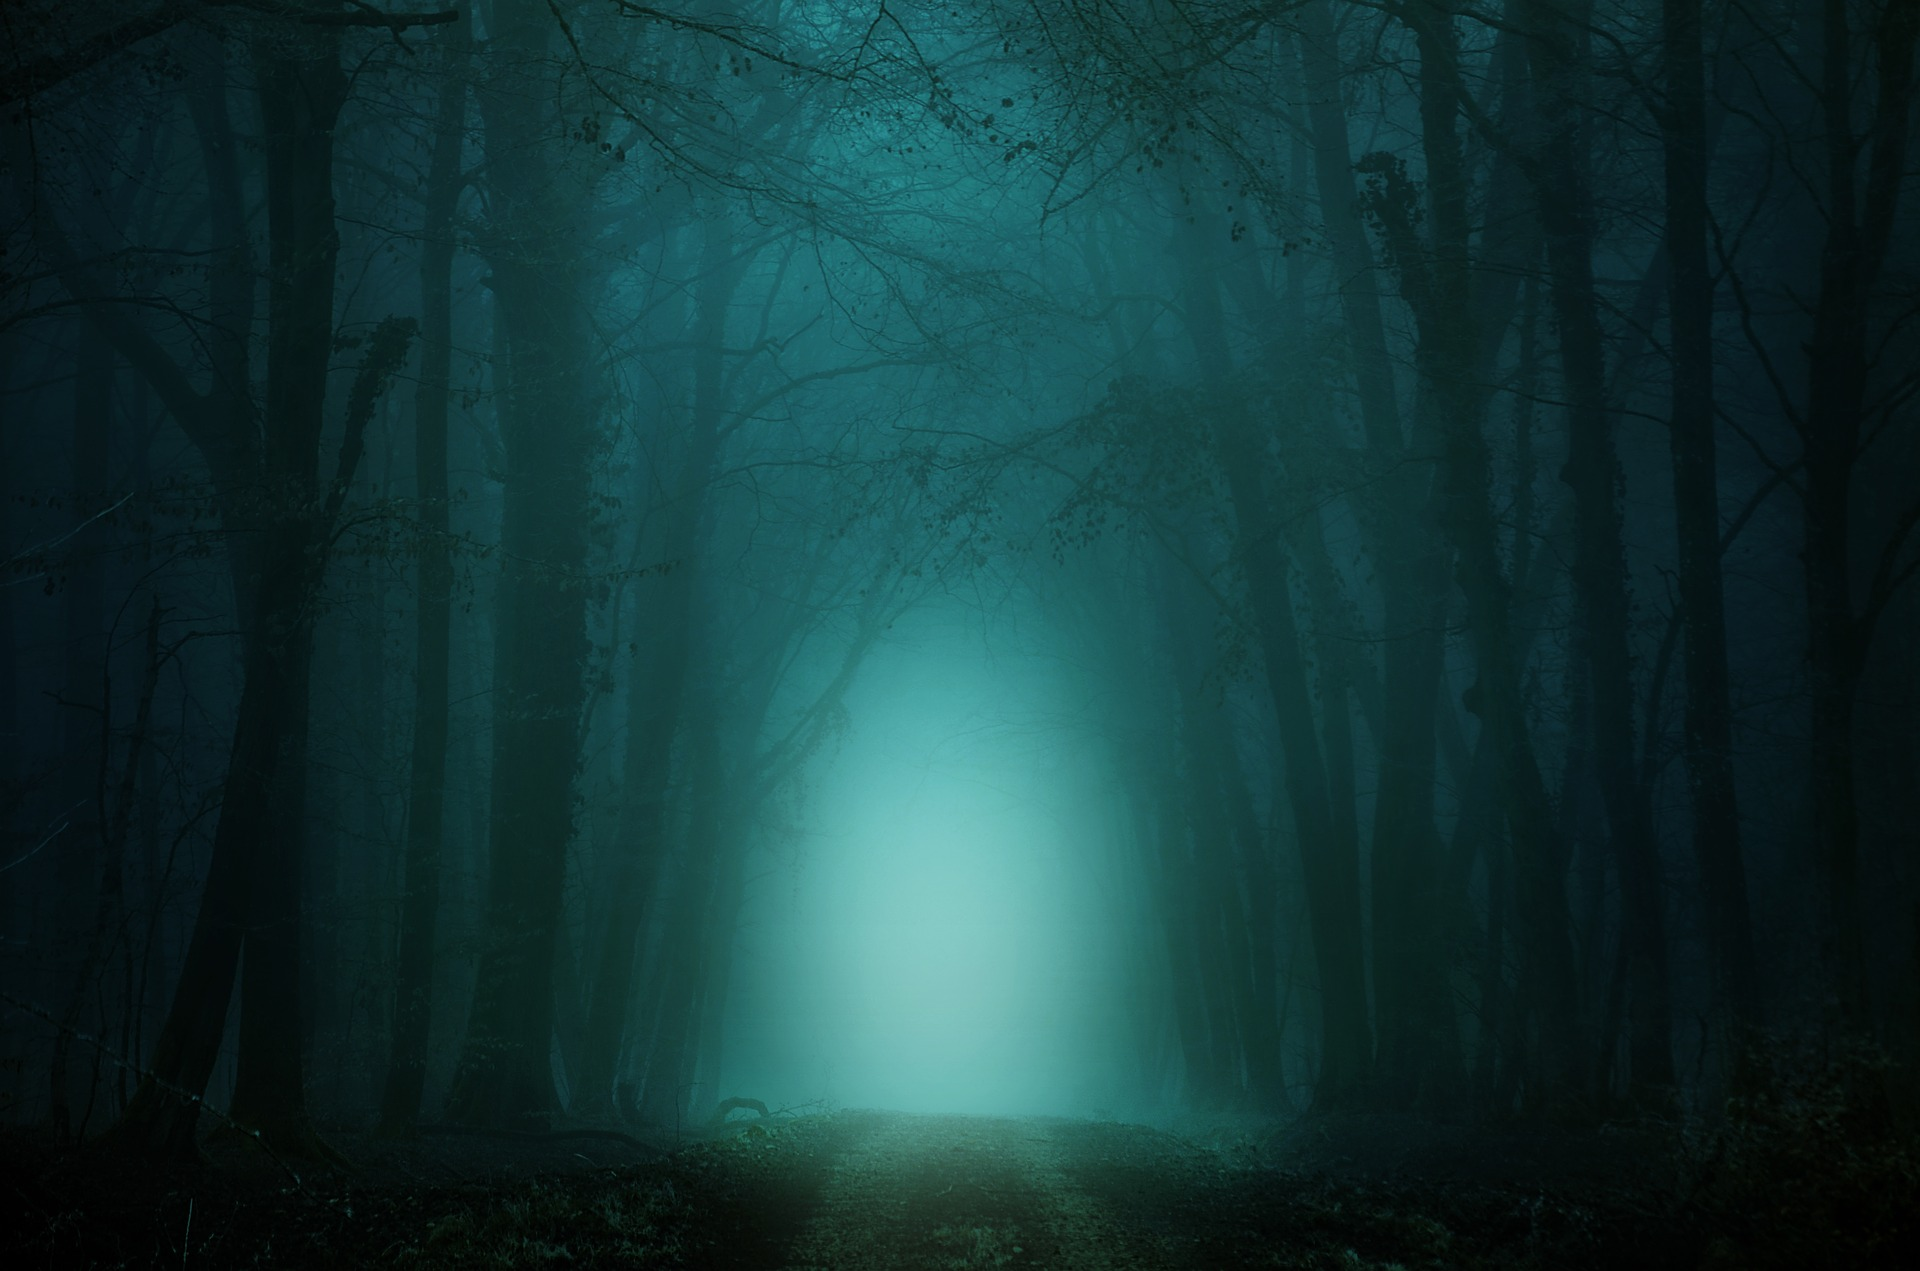 Spooky Forest https://pixabay.com/illustrations/forest-away-fog-trees-atmosphere-4099730/